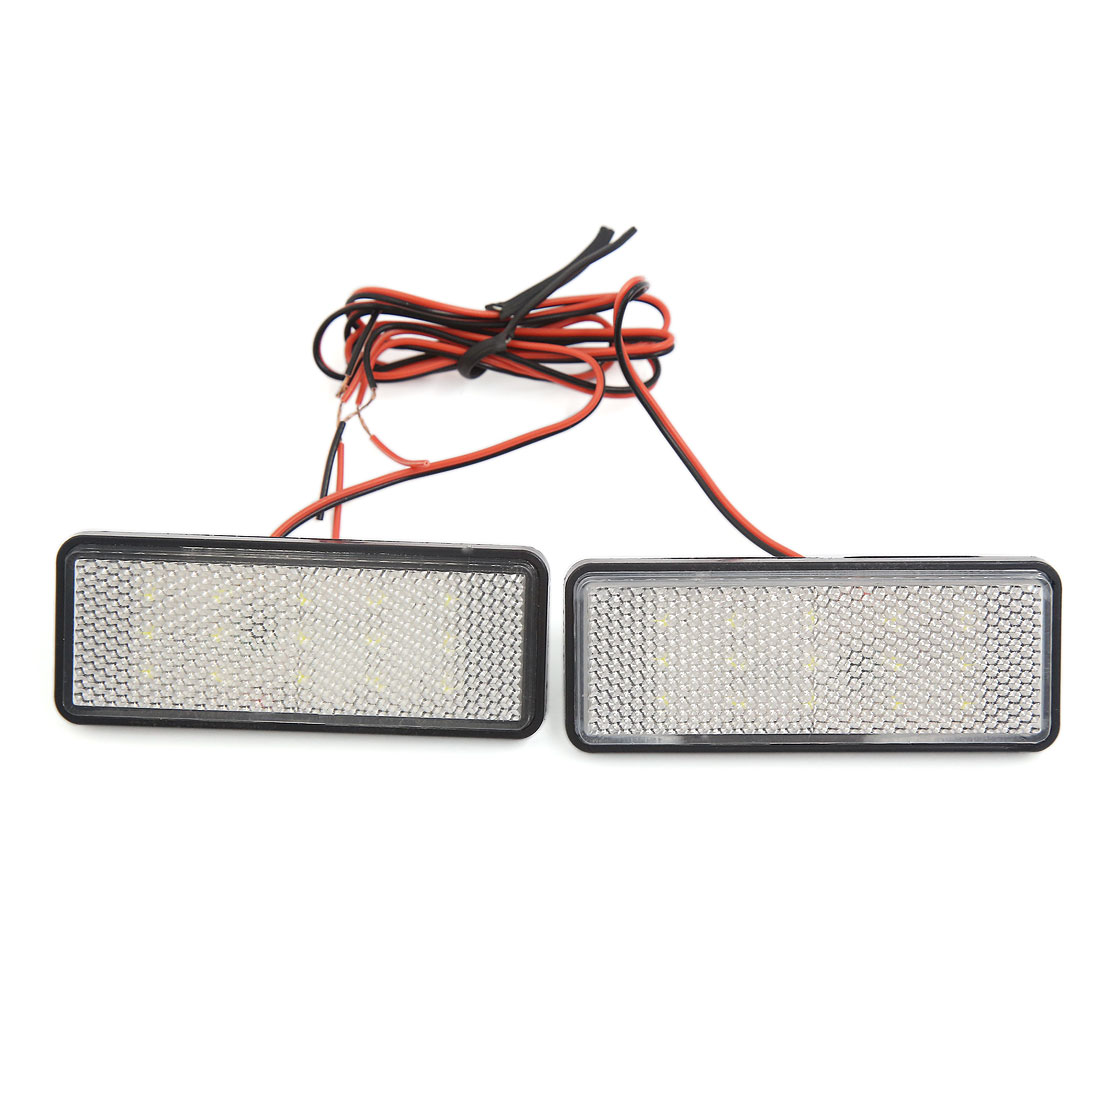 Car Motorcycle Rectangle Reflector White LED Strobe Lamp Rear Tail Light 2pcs